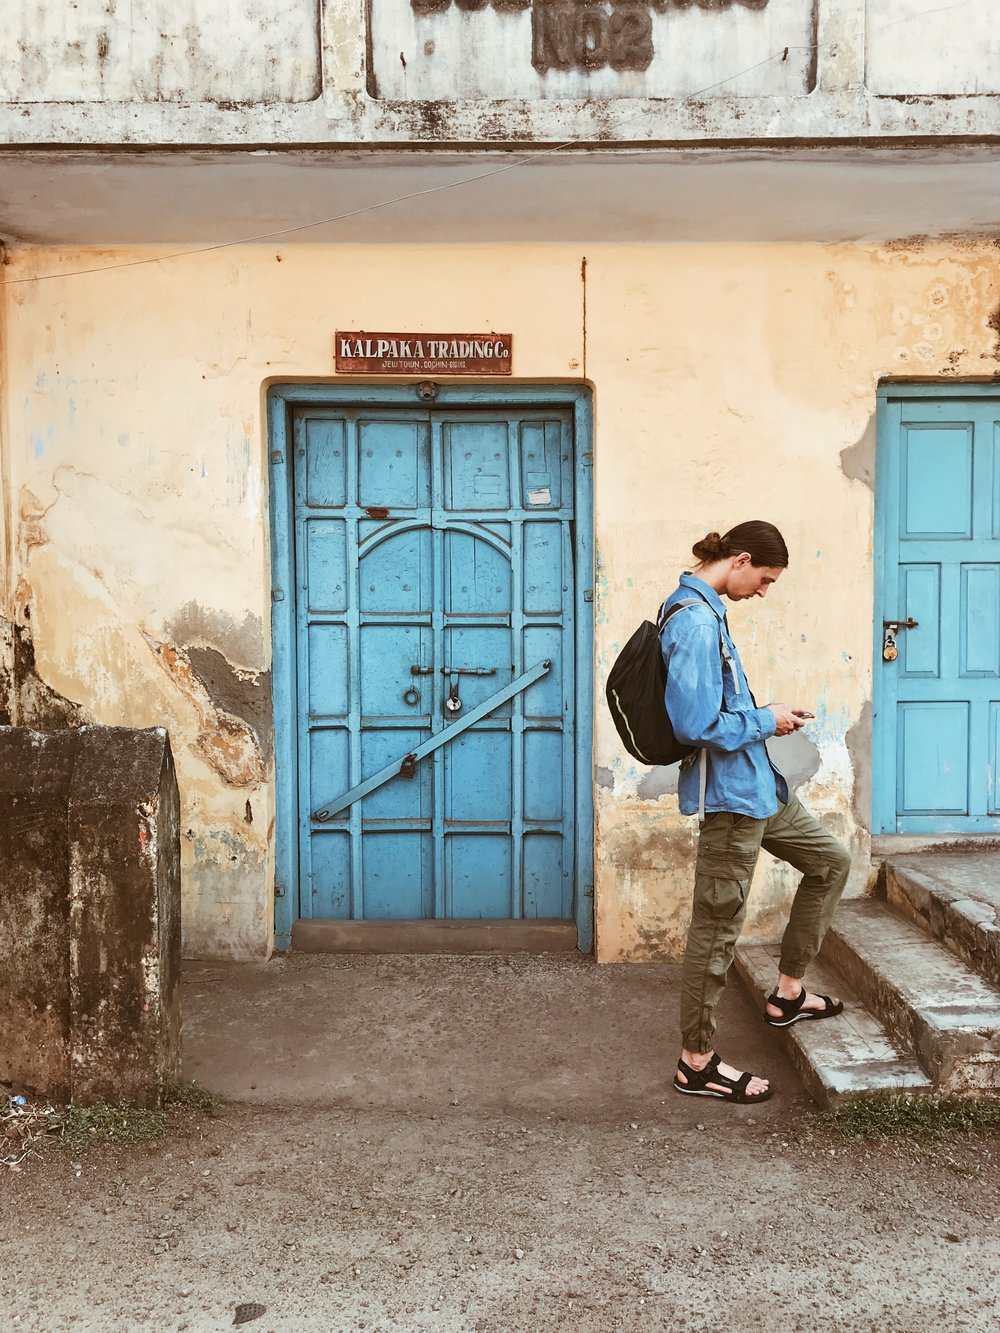 Getting lost on our very first day -in Jew Town, Mattancherry (Yes, that's what it's really called)